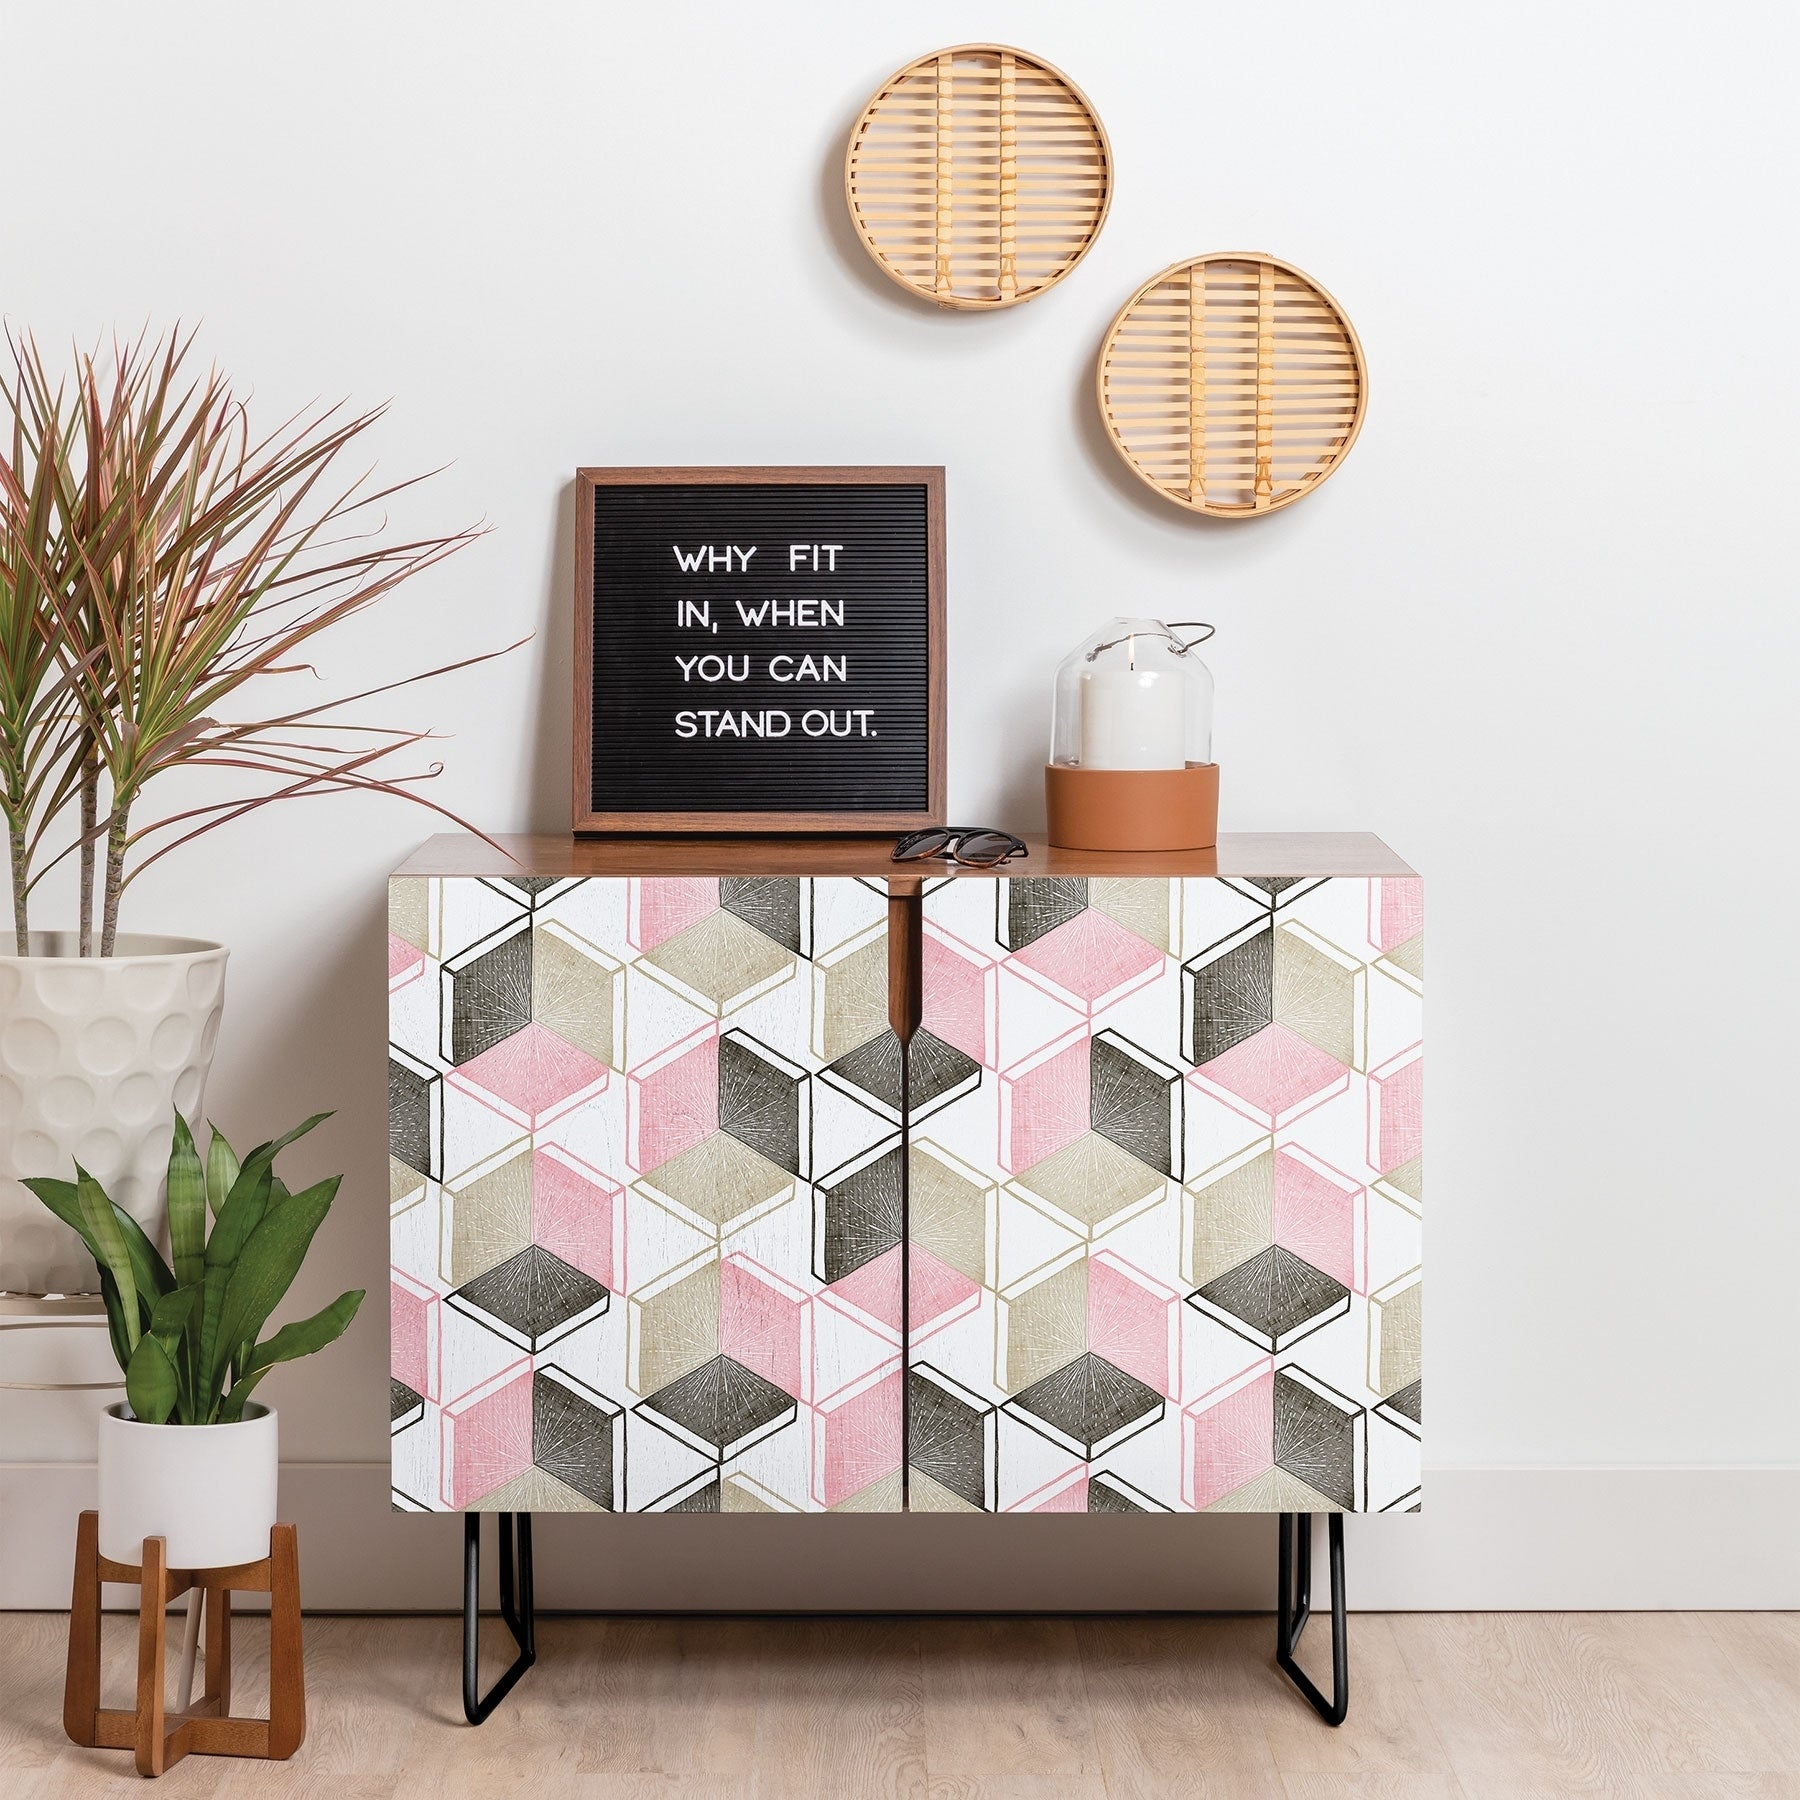 Deny Designs Geometric Shapes Credenza (Birch Or Walnut, 2 Leg Options) Intended For Geometric Shapes Credenzas (Gallery 2 of 30)